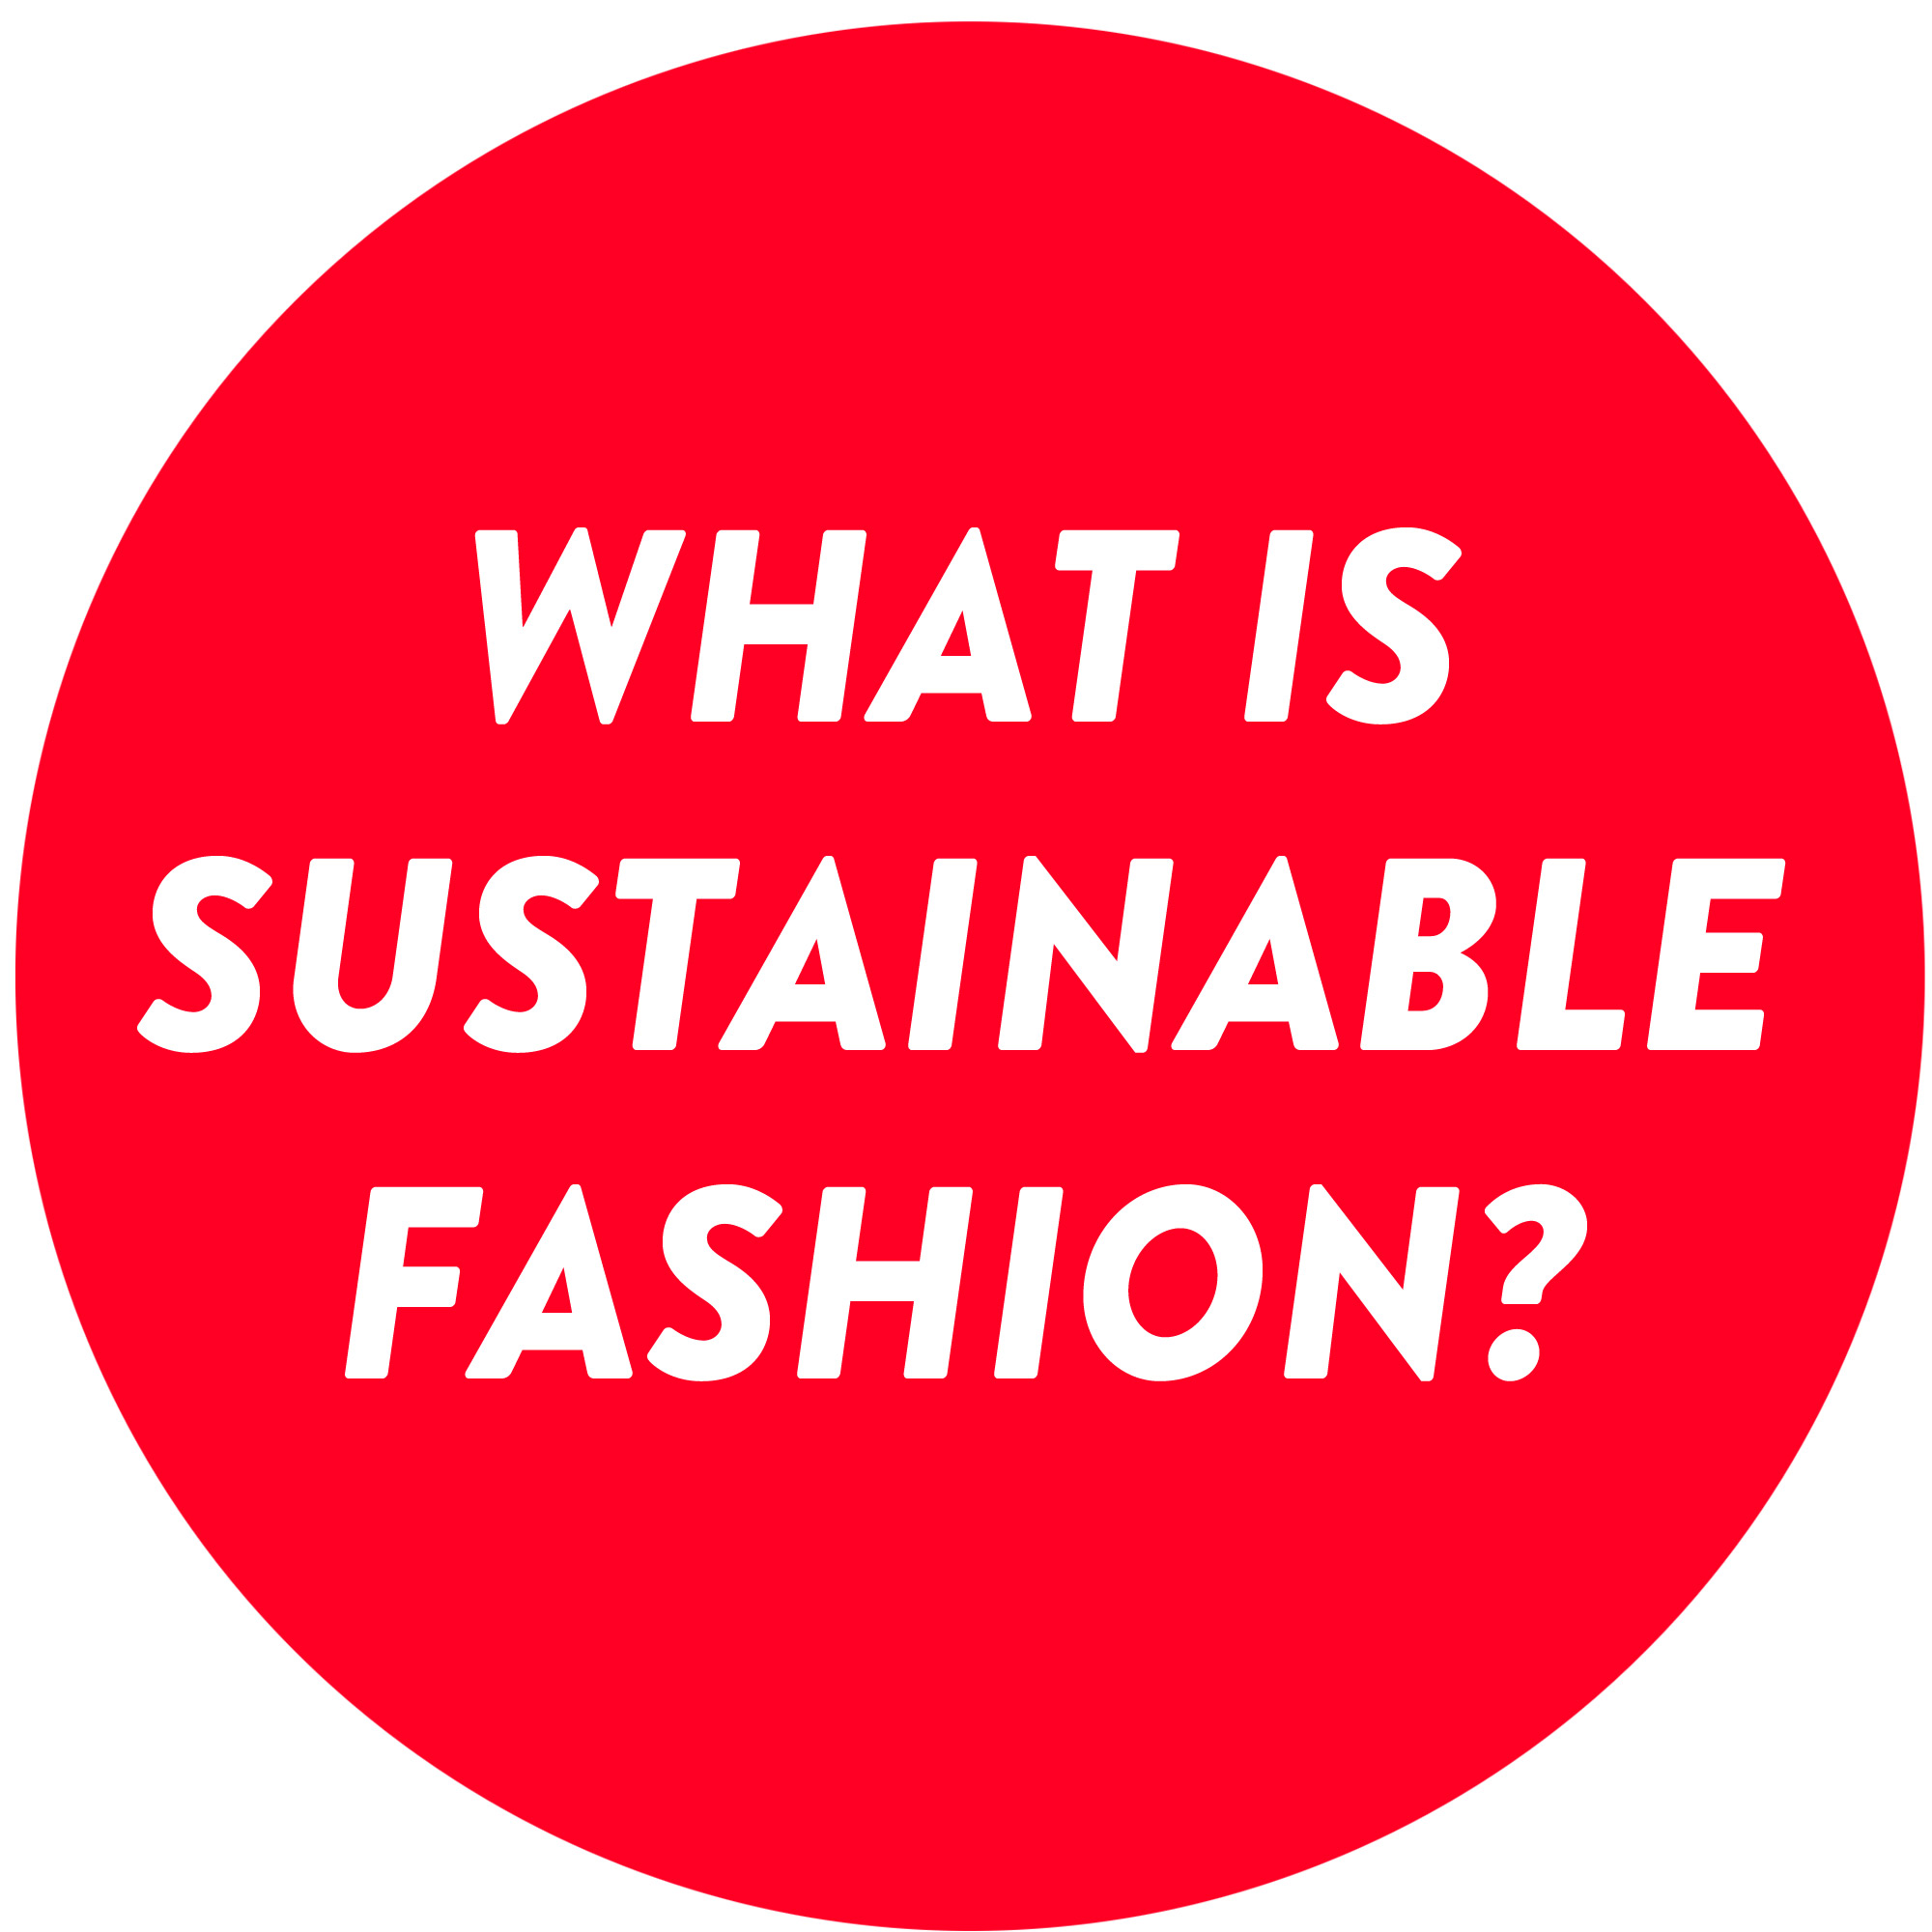 what-is-sustainable-fashion.jpg